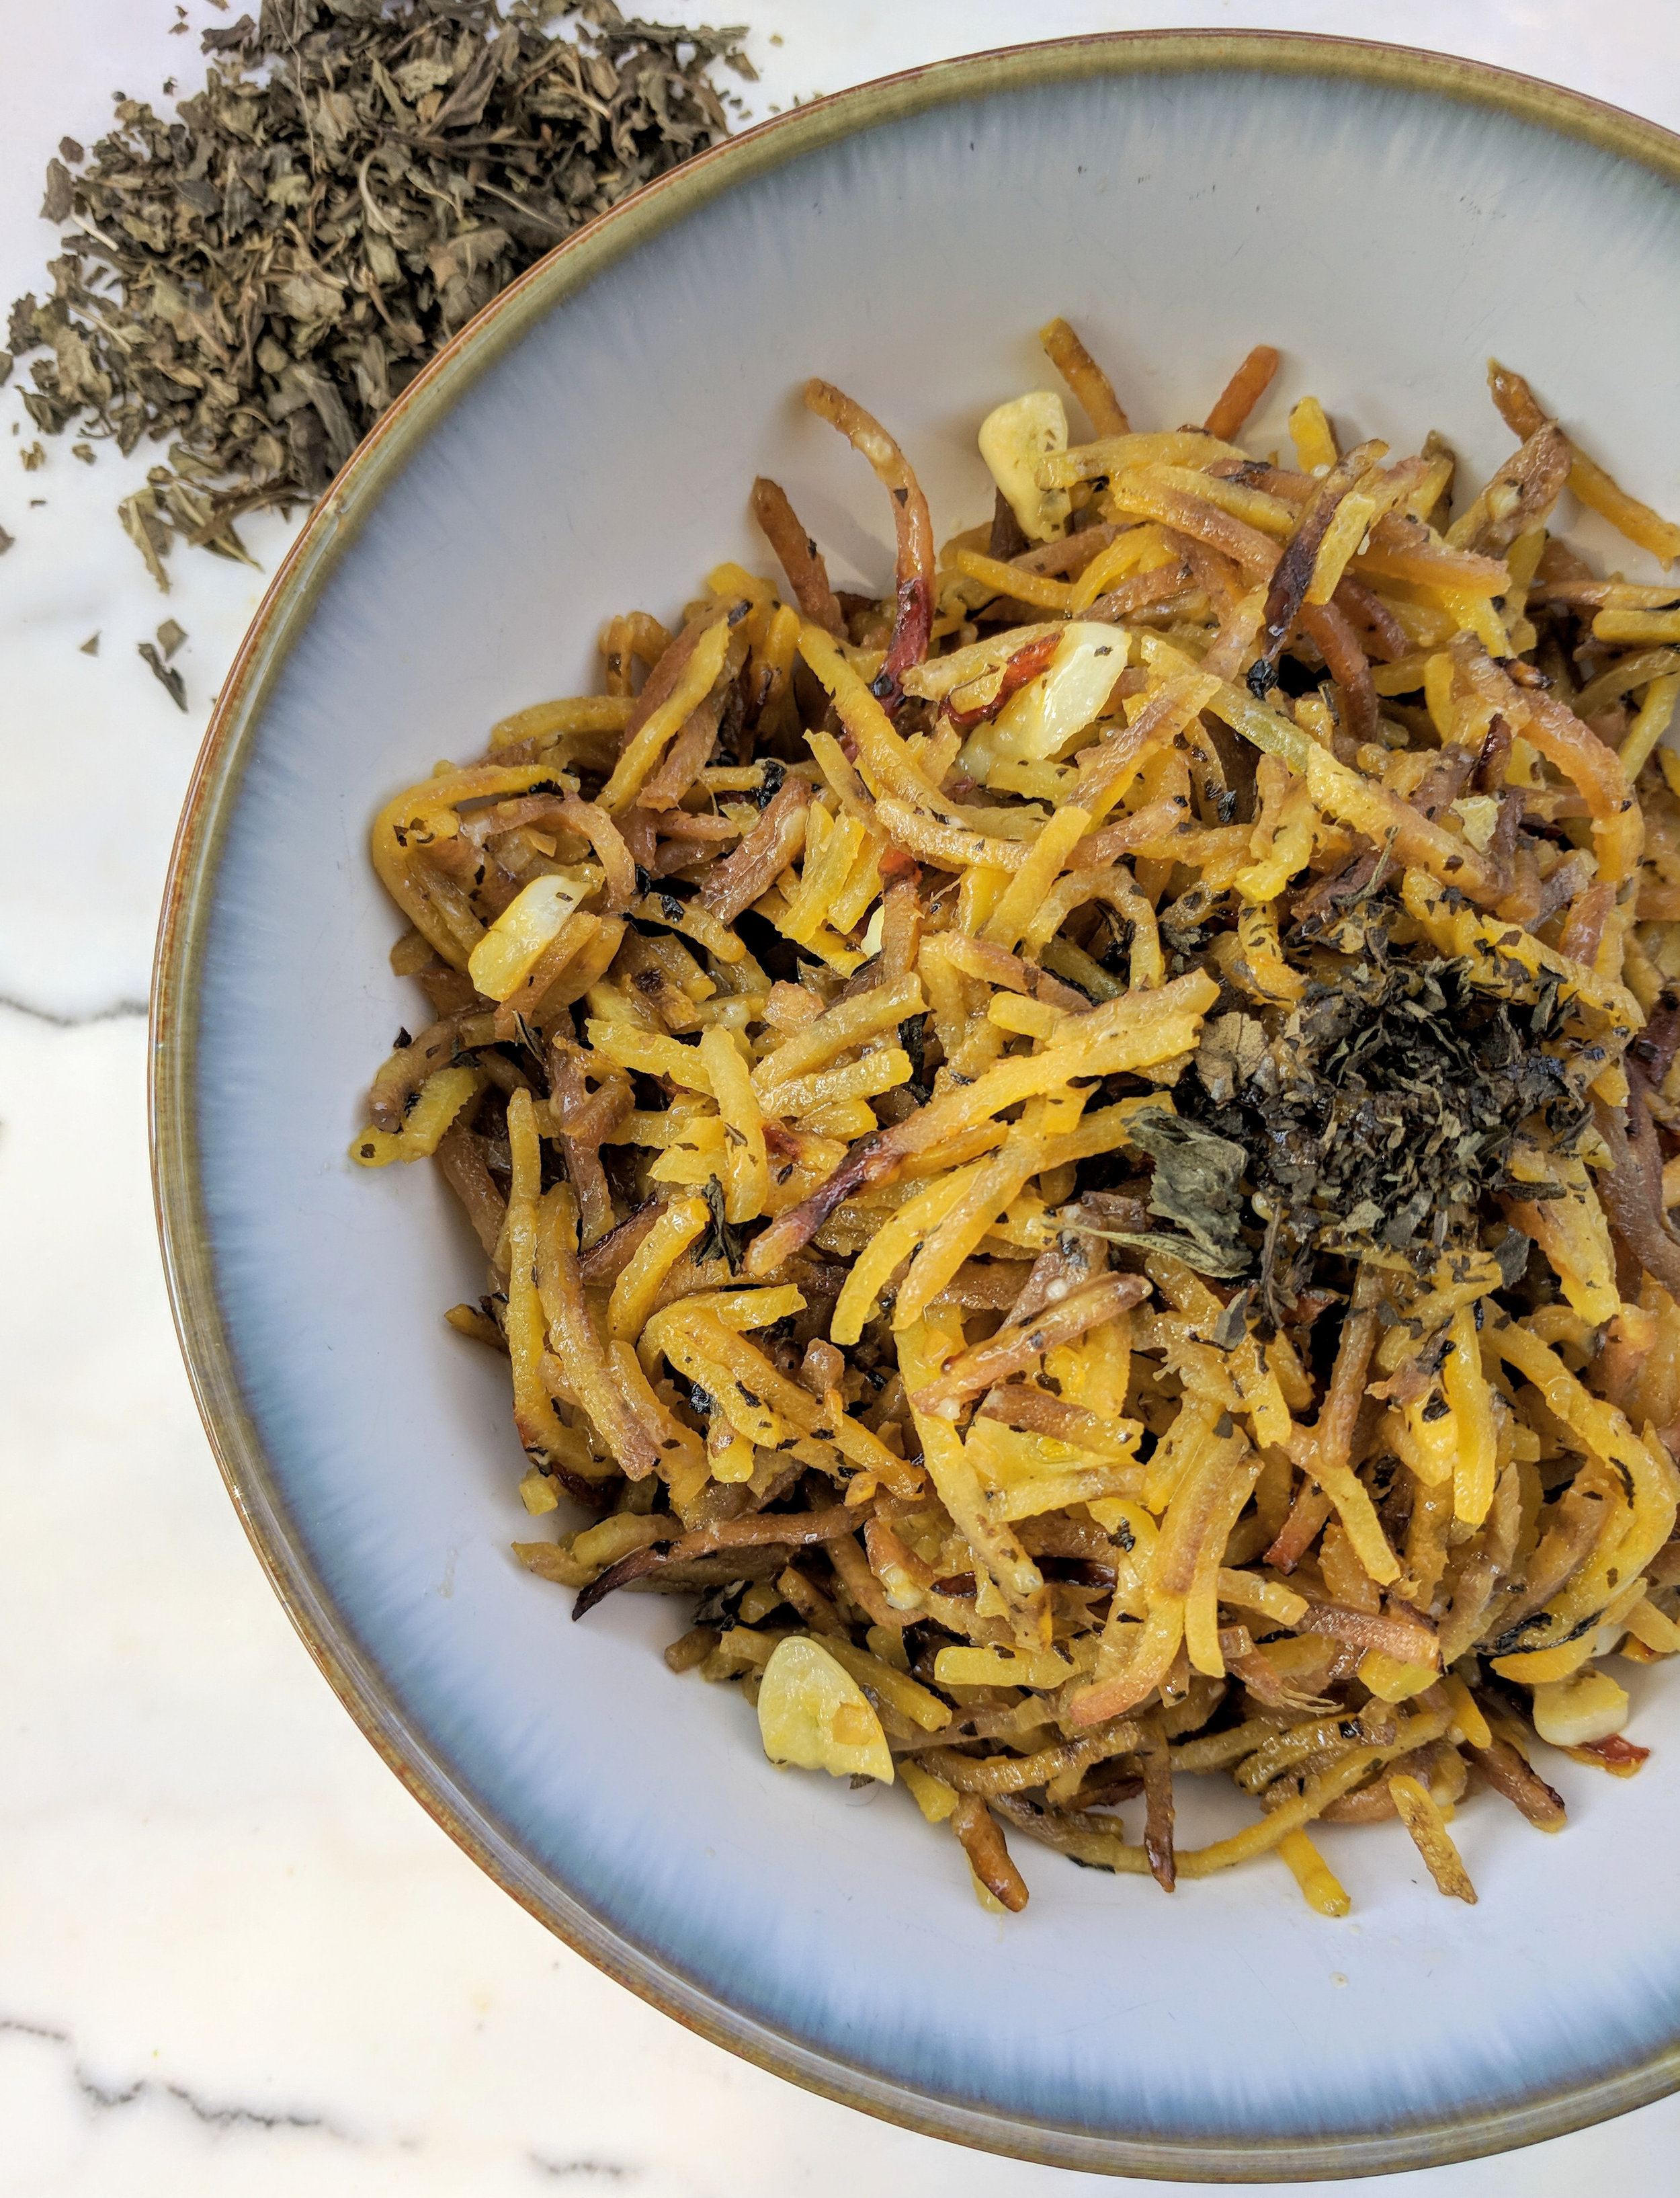 Prepared with golden beet spirals as a noodle or pasta replacement and seasoned with garlic, basil, and parmesean cheese you won't even miss your traditional noodles.